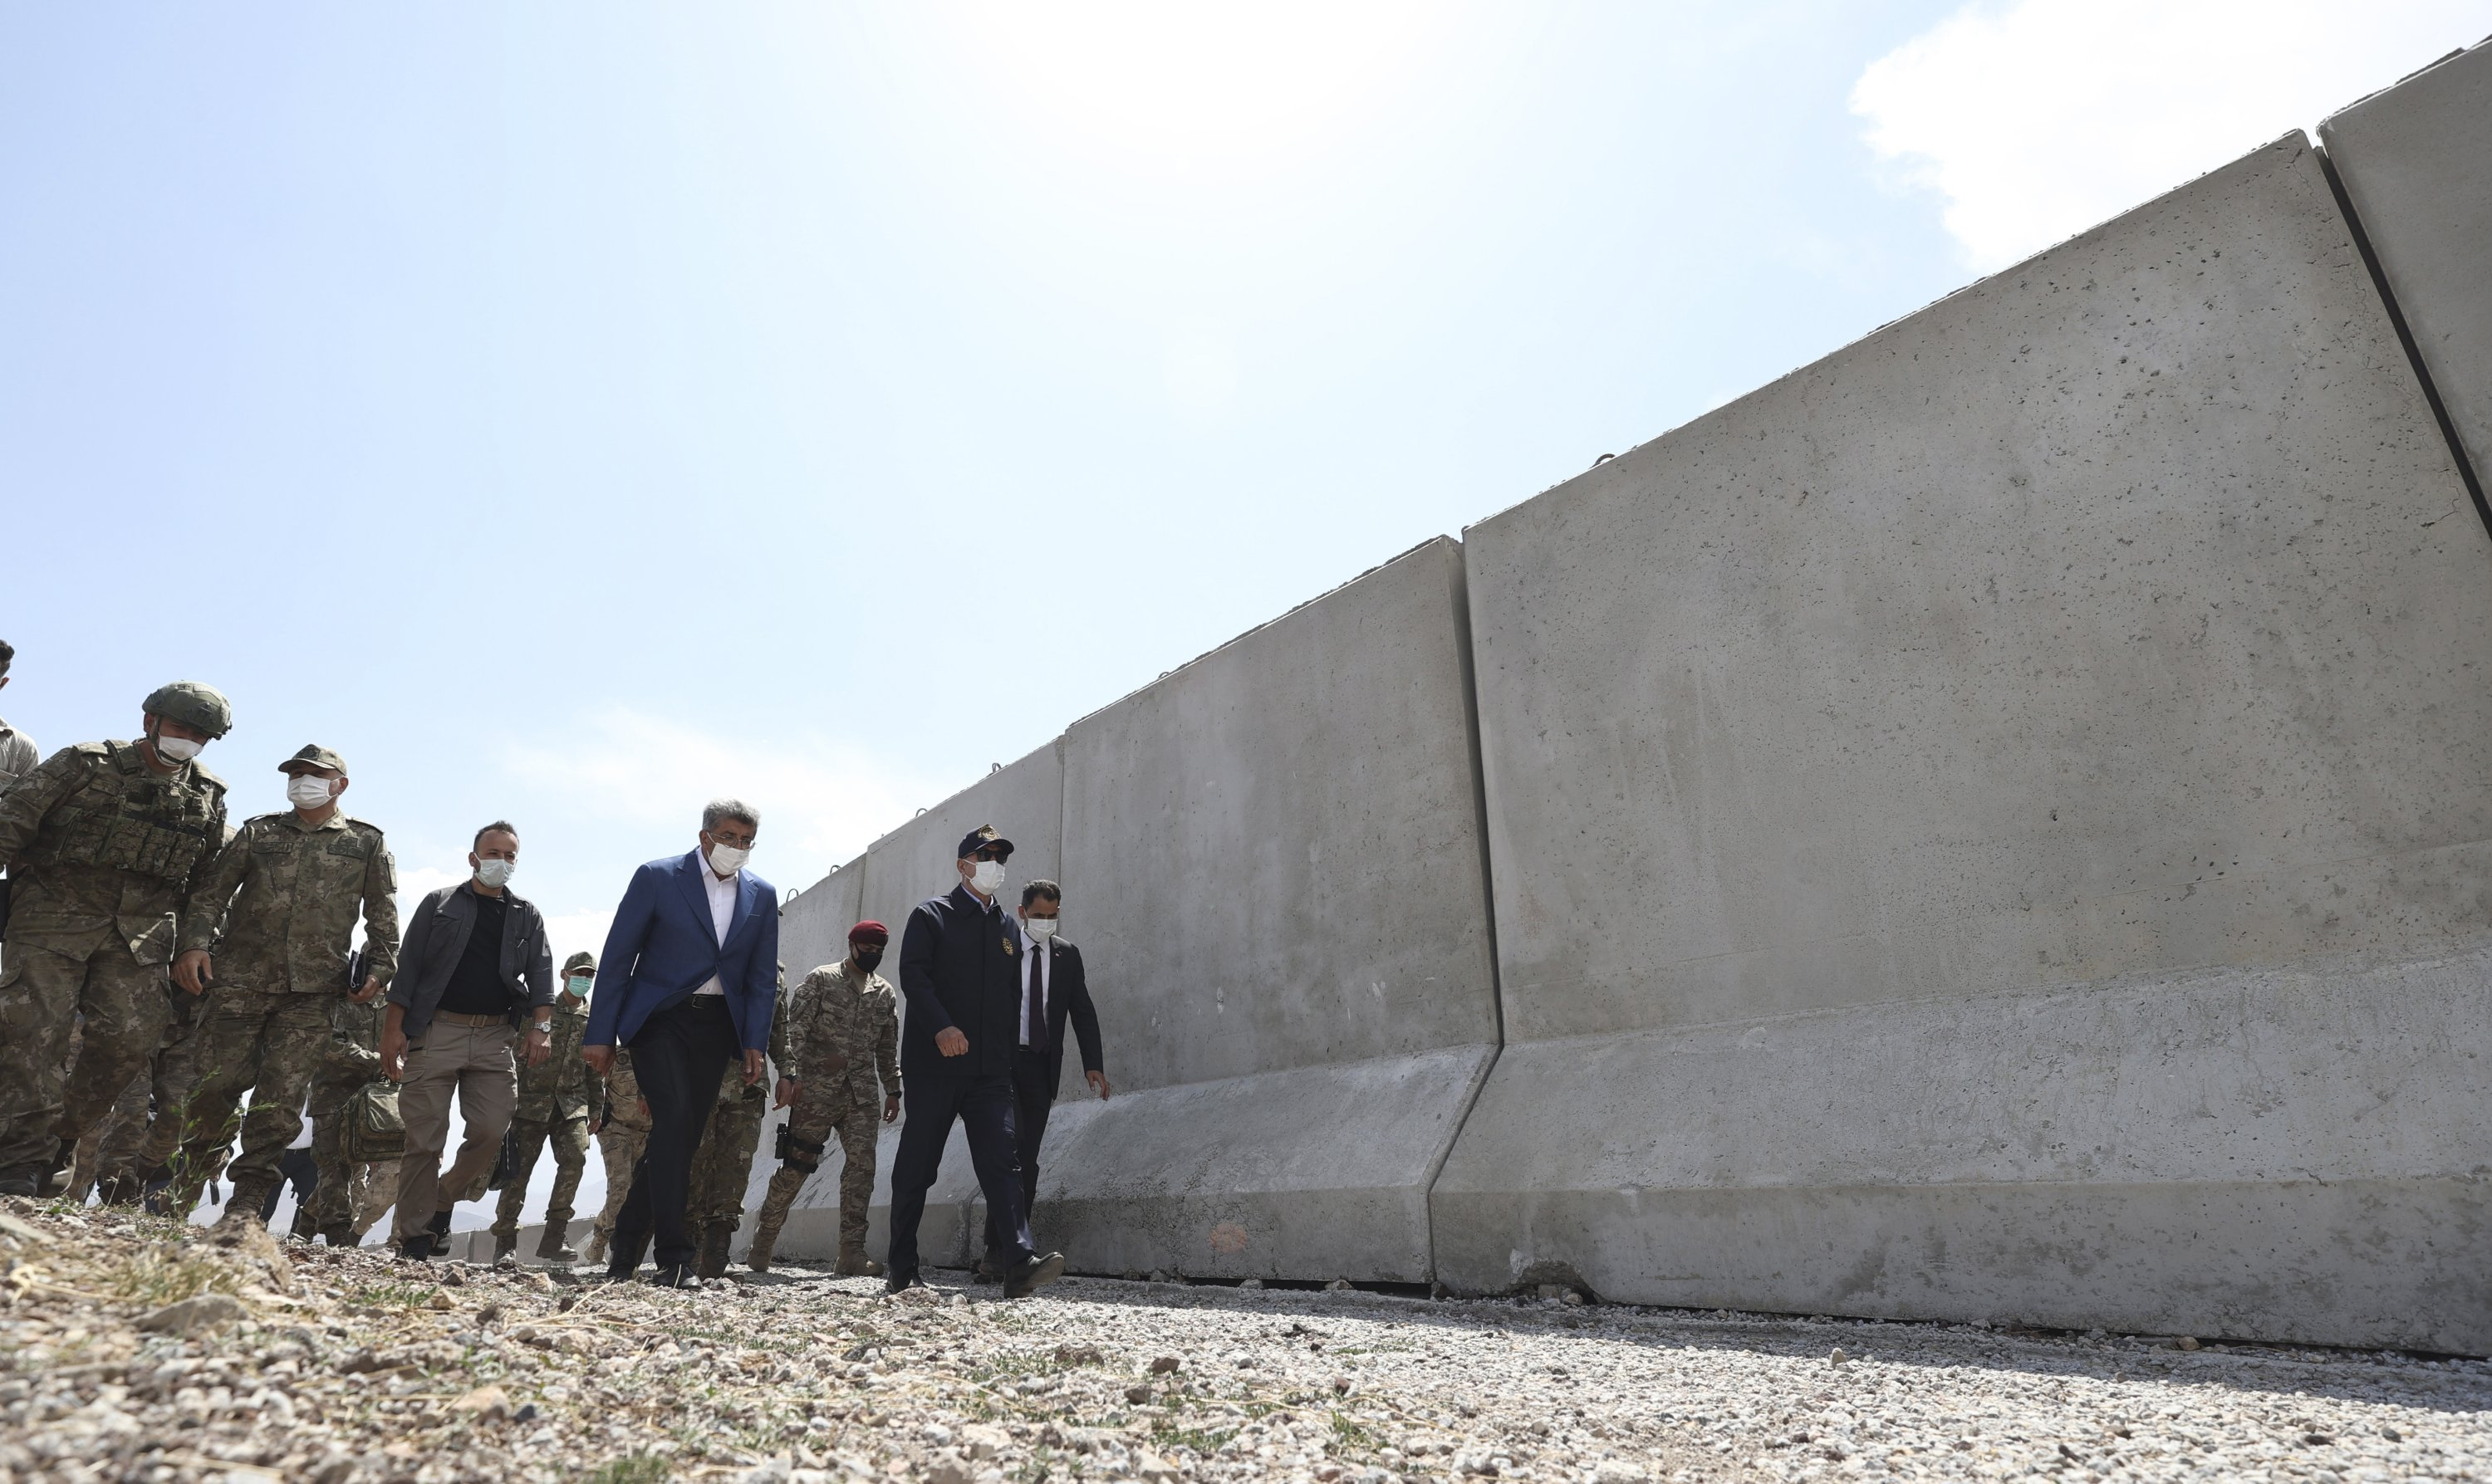 Defense Minister Hulusi Akar (R) and top army commanders check the Turkey-Iran border in Van, eastern Turkey, Aug. 15, 2021. (Turkish Defense Ministry via AP, Pool)